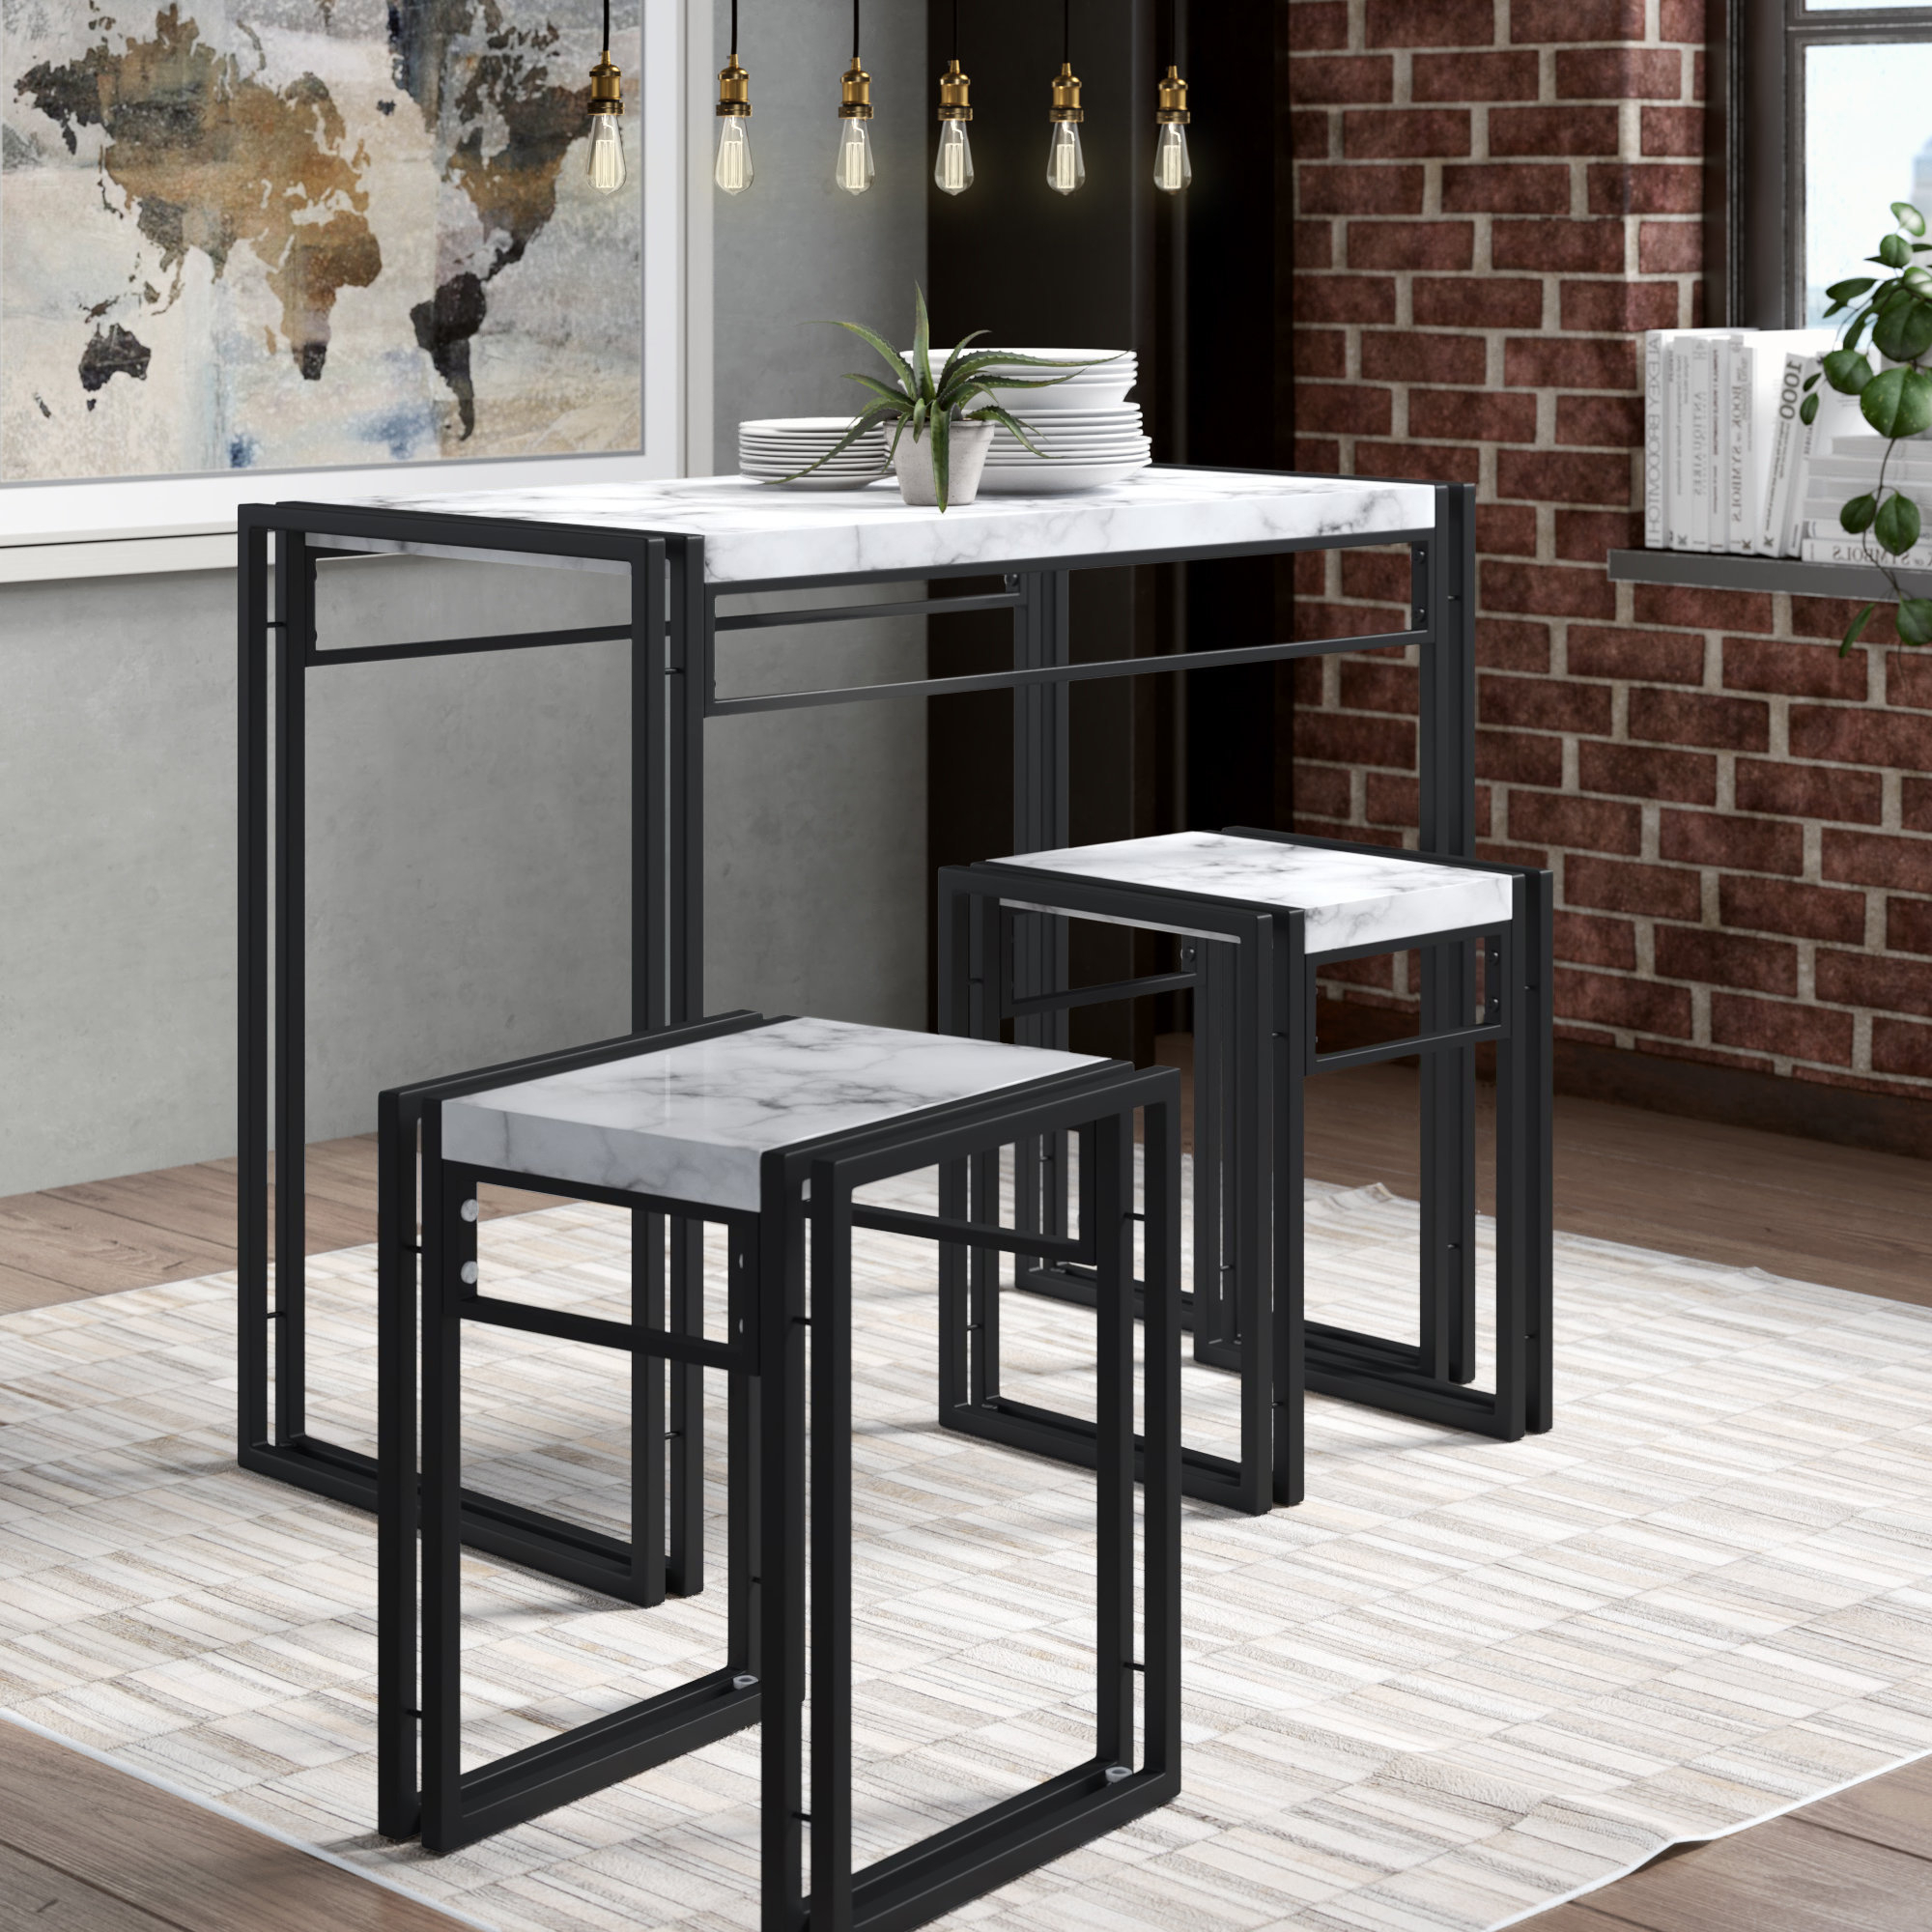 Partin 3 Piece Dining Sets Intended For Most Up To Date Williston Forge Debby Small Space 3 Piece Dining Set & Reviews (View 11 of 25)